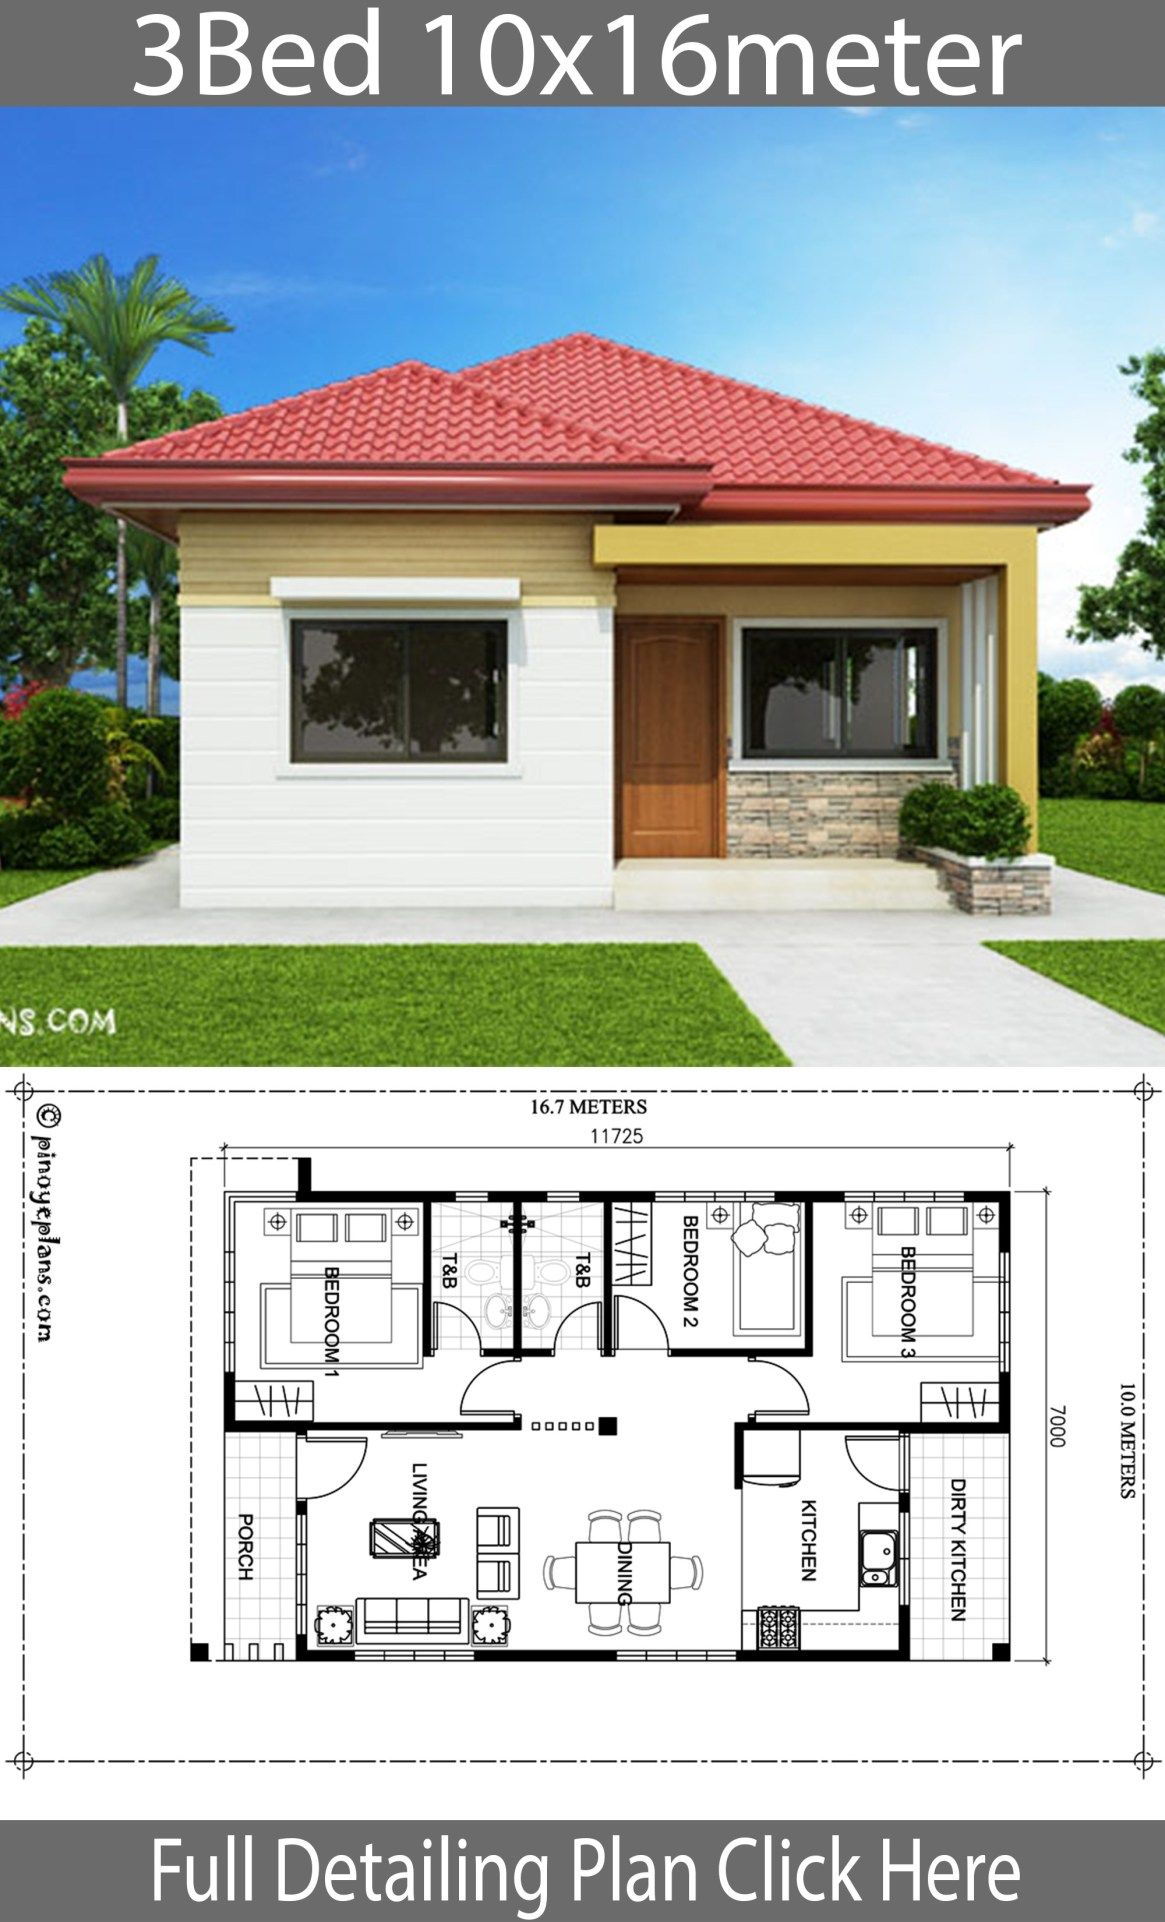 Home Design 10x16m With 3 Bedrooms Home Design With Plansearch House Construction Plan Bungalow Style House Plans Model House Plan